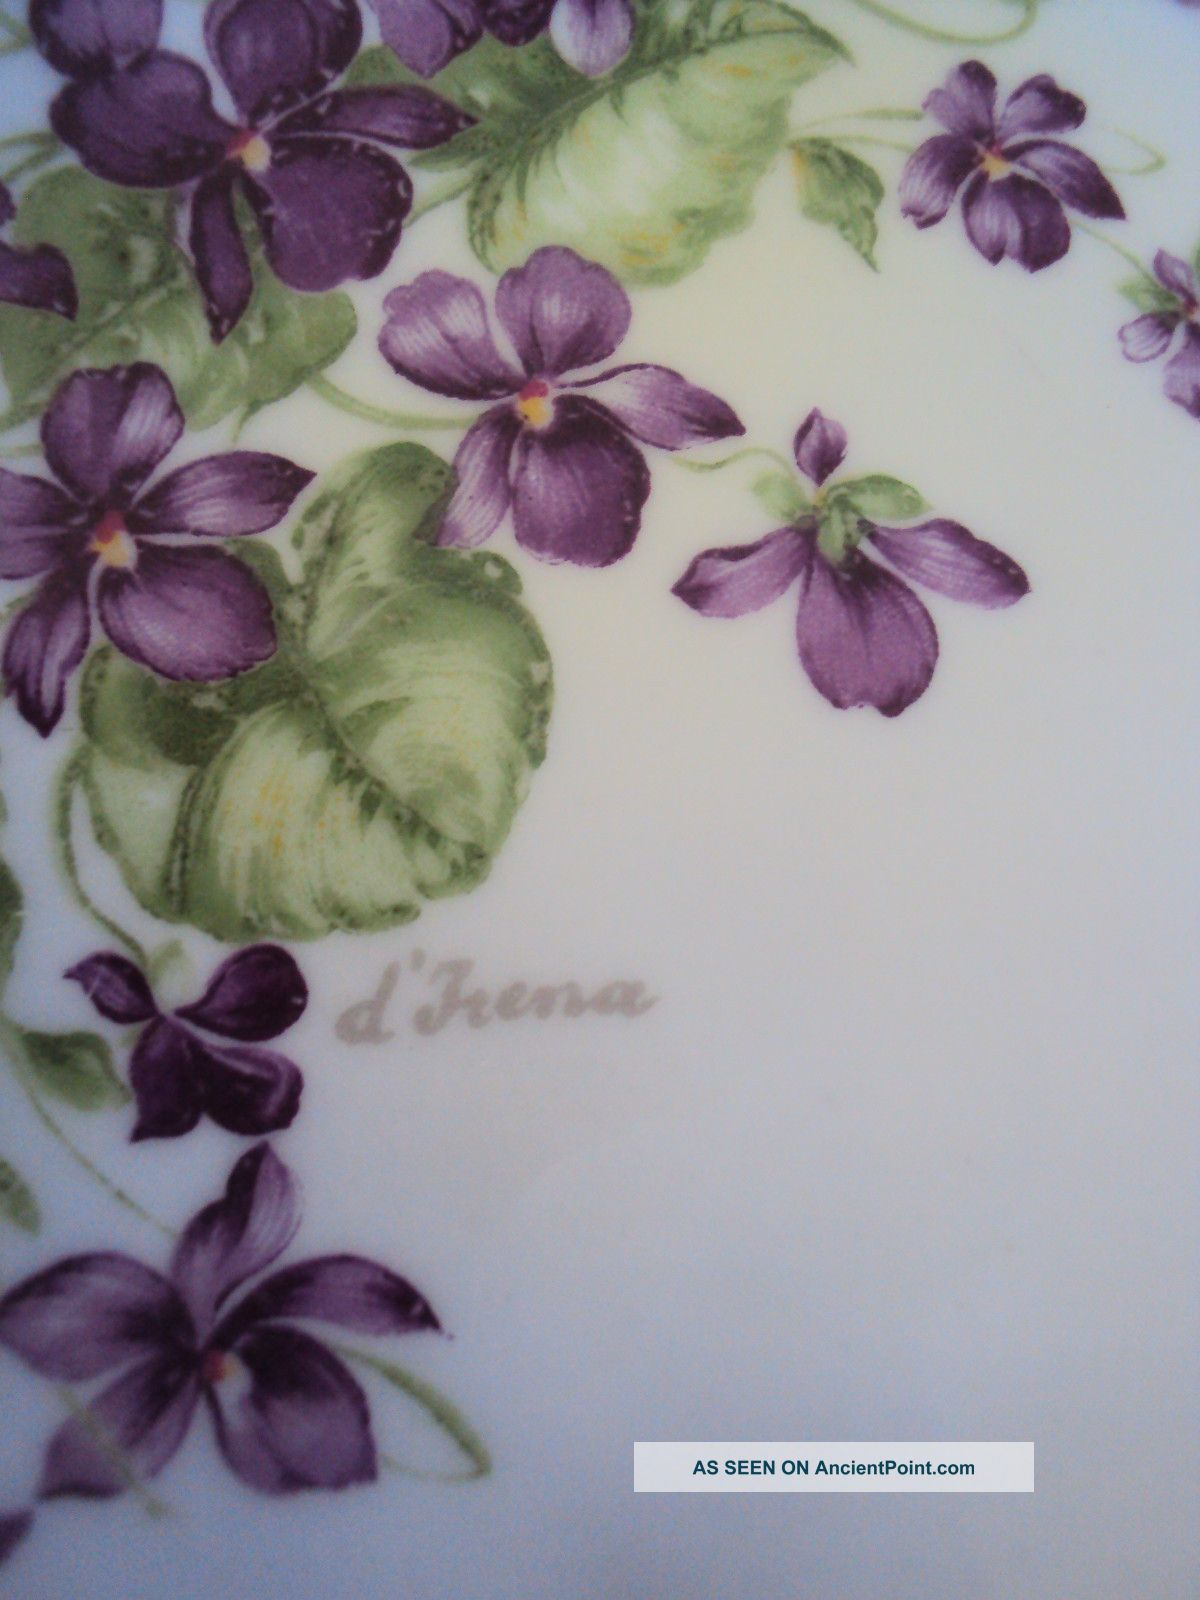 Pittura Viole Violets Porcelain Co Pittura Porcellana Porcellana Dipinta